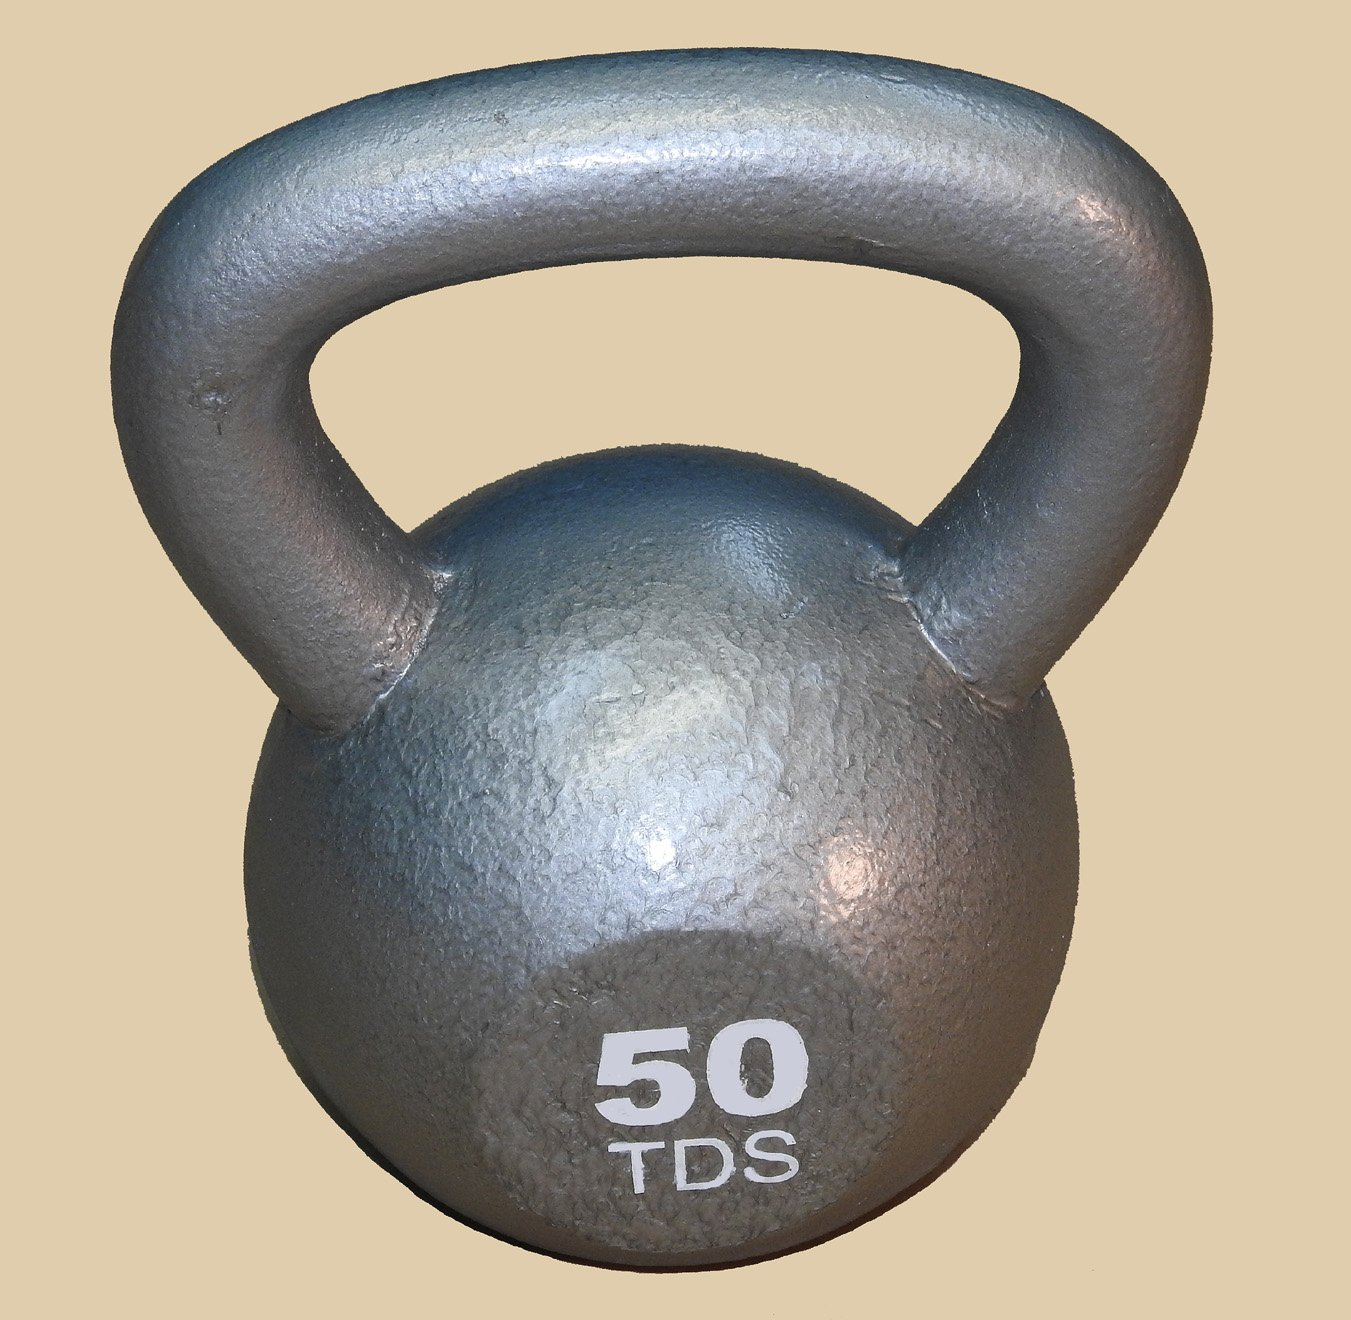 TDS 50 lb Solid Cast Iron Kettlebell for Full Body Workout Weight Loss and Strength Training